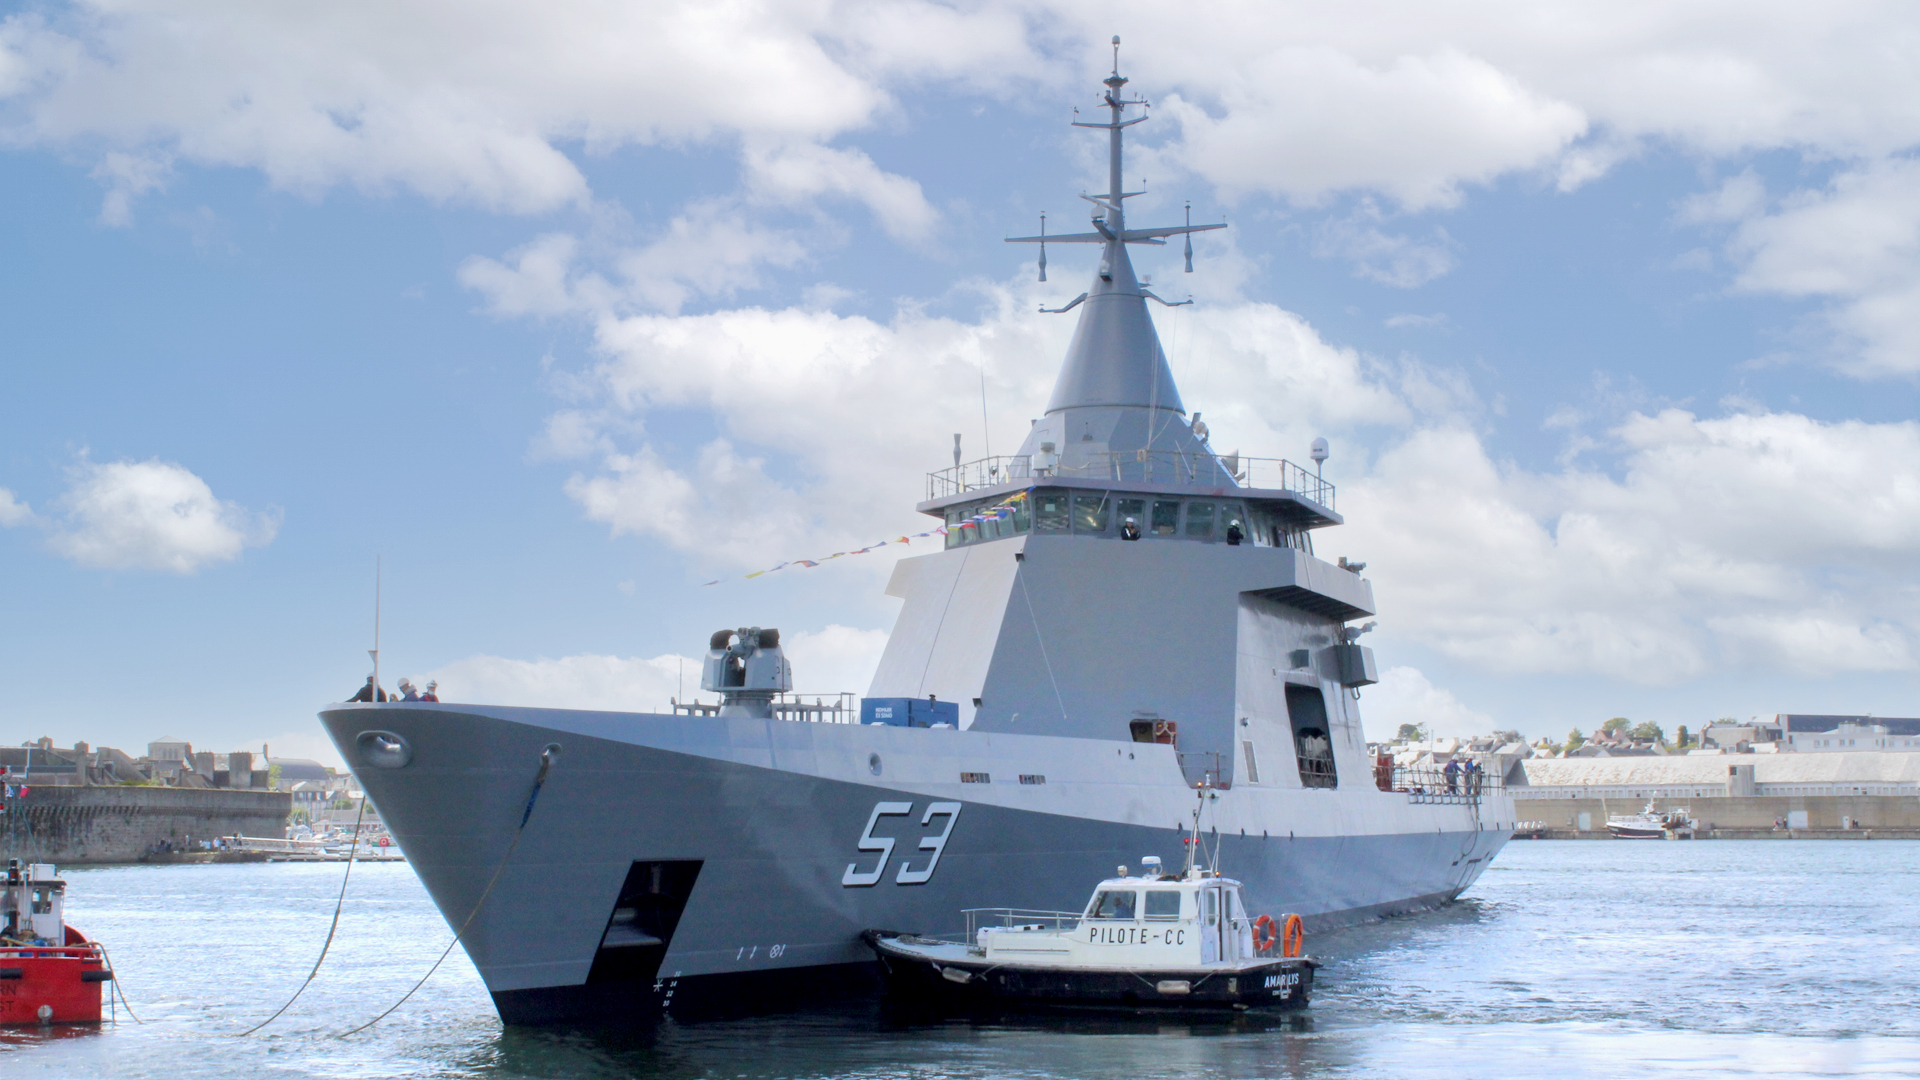 boat of the Argentinean Navy.